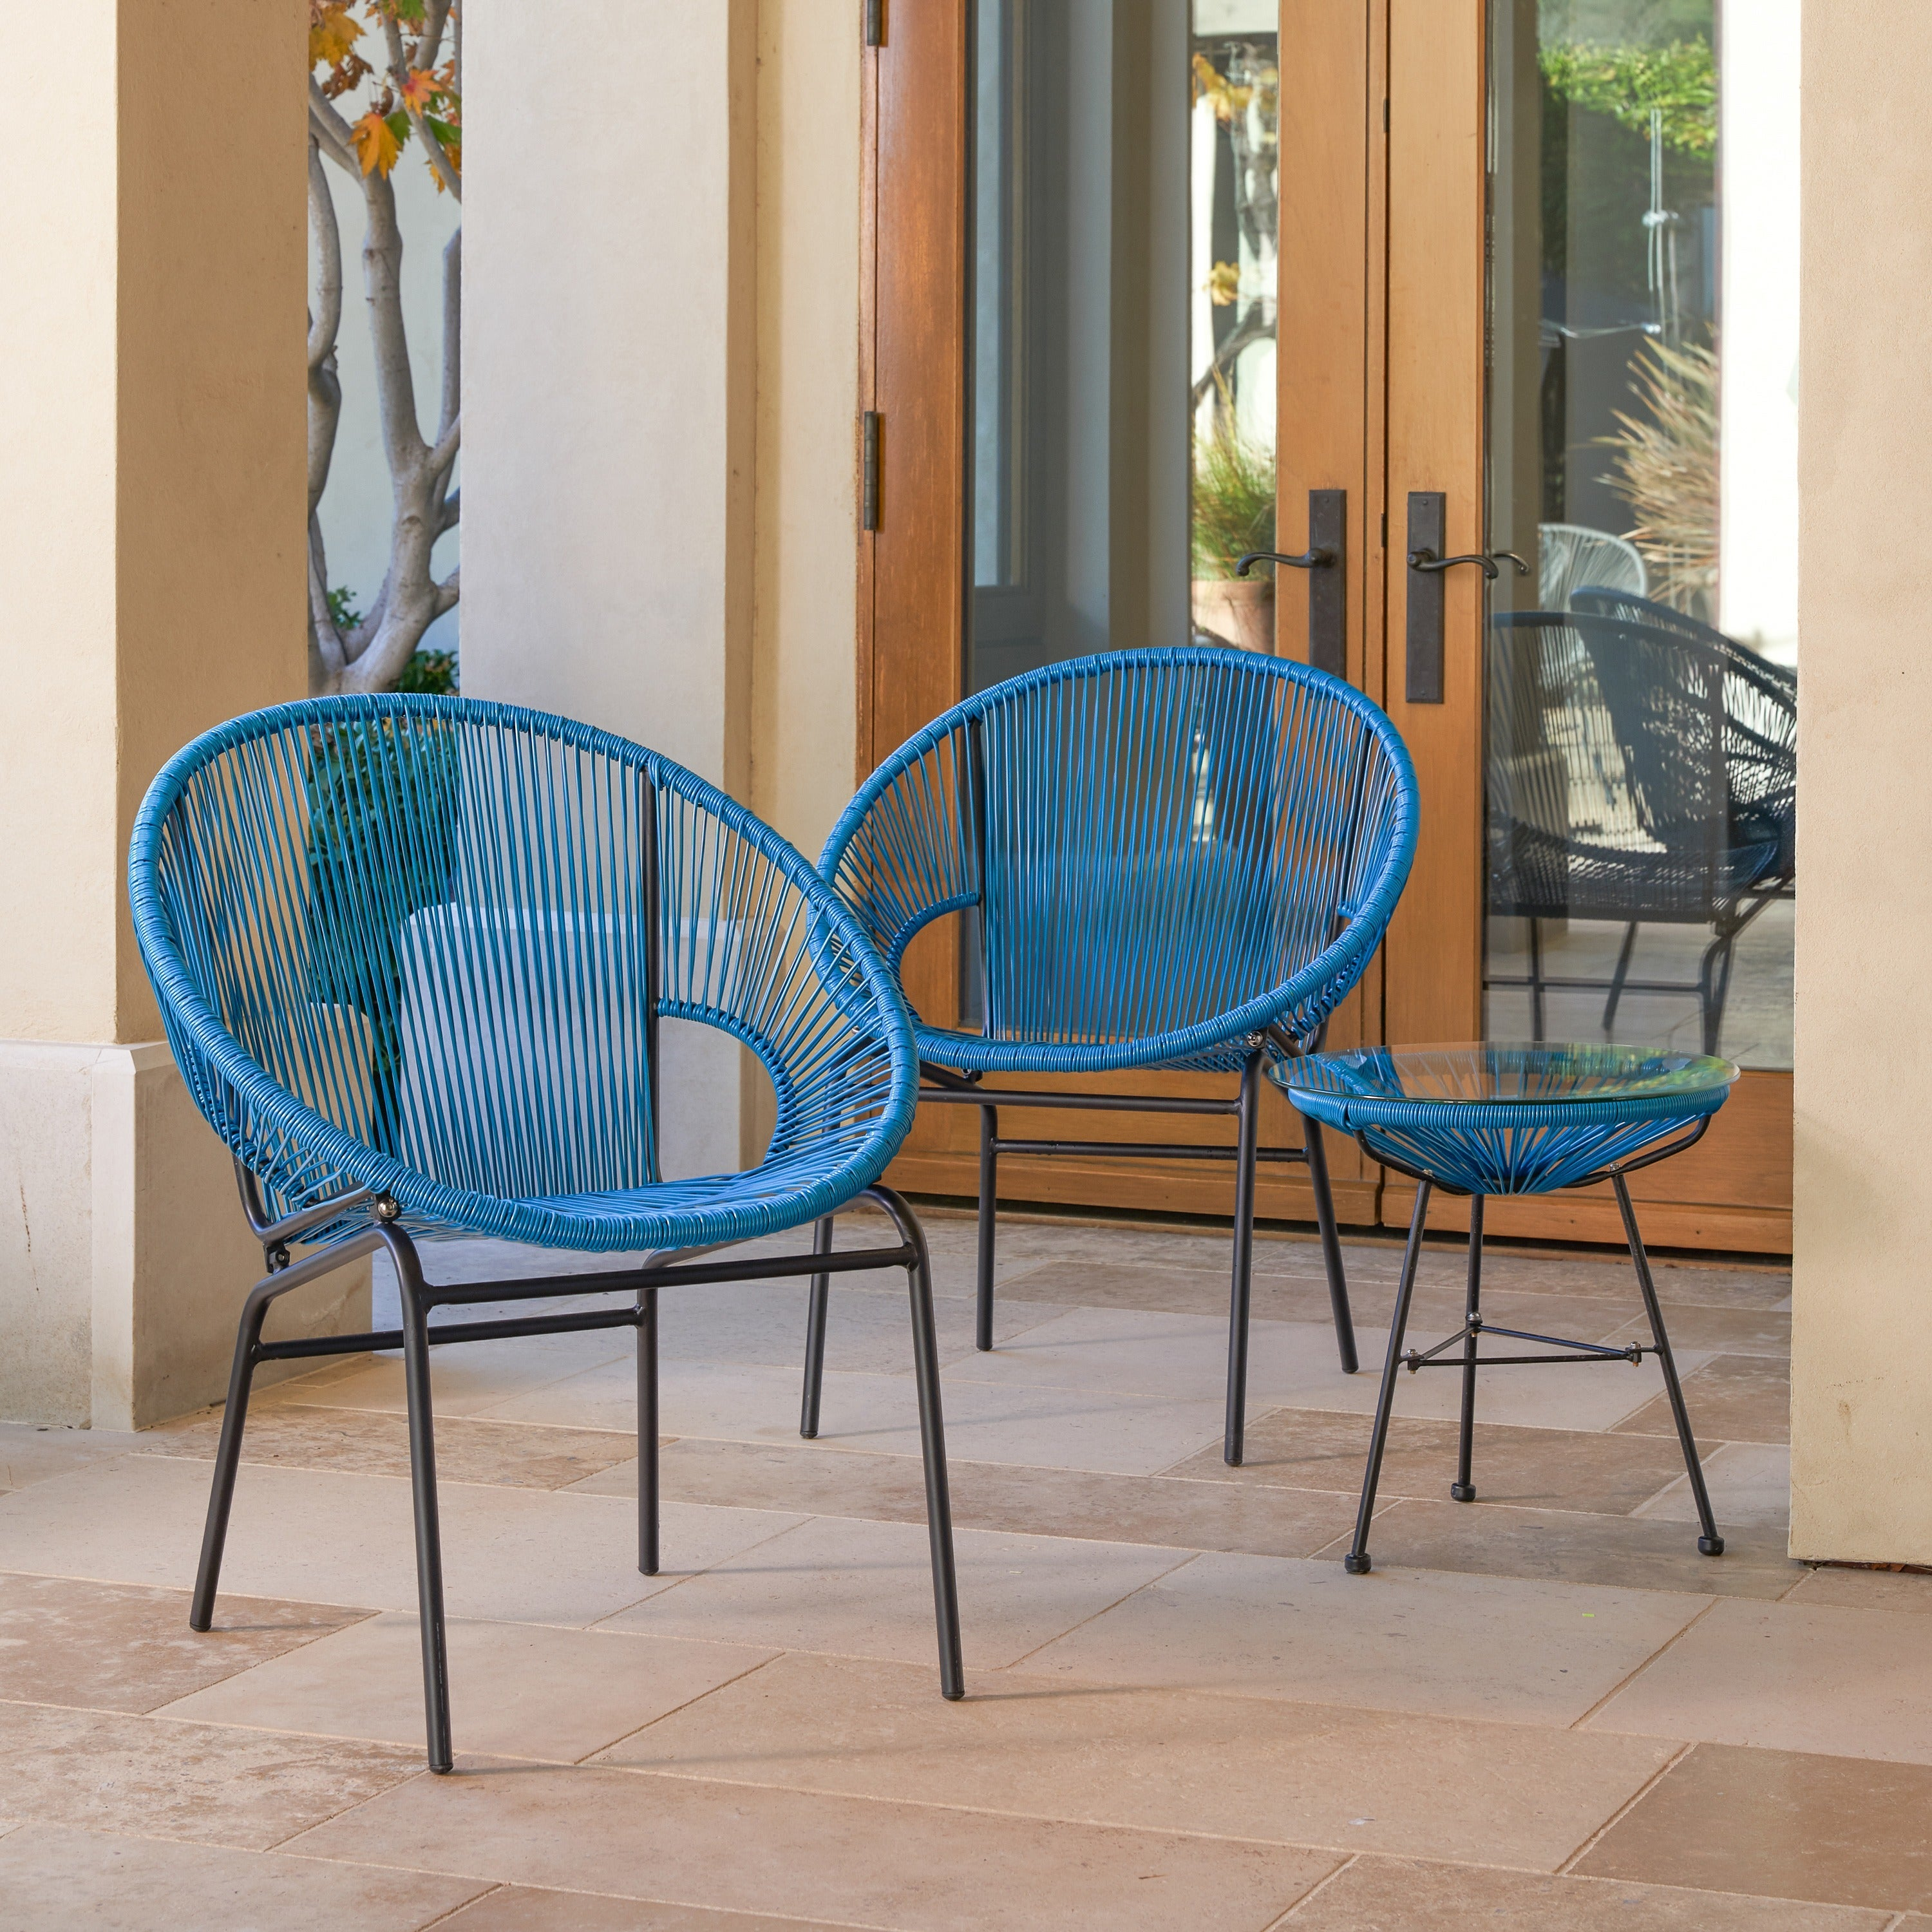 Superieur Shop Sarcelles Woven Wicker Patio Chairs By Corvus (Set Of 2)   Free  Shipping Today   Overstock.com   17805619